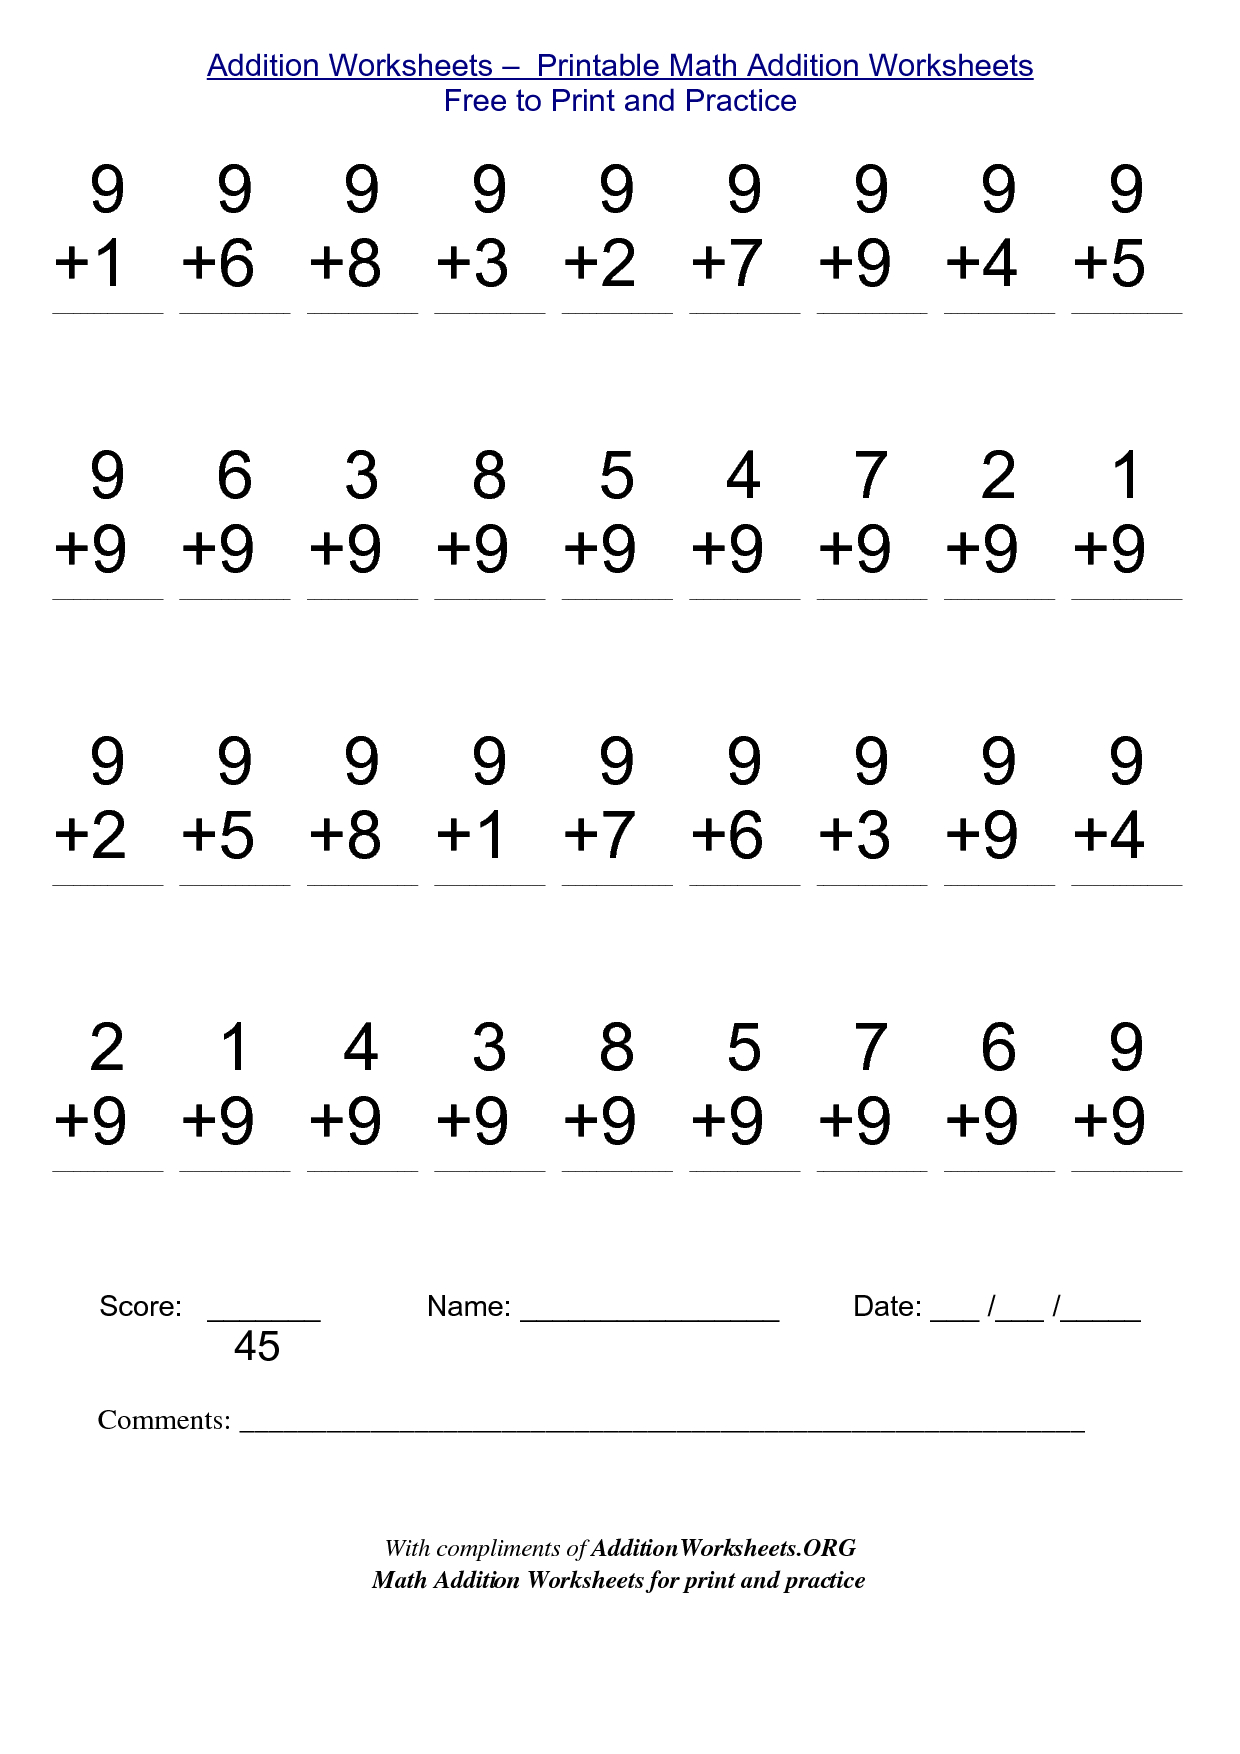 Math Worksheets For Free To Print - Alot | Me | Kindergarten | Free Printable Math Worksheets